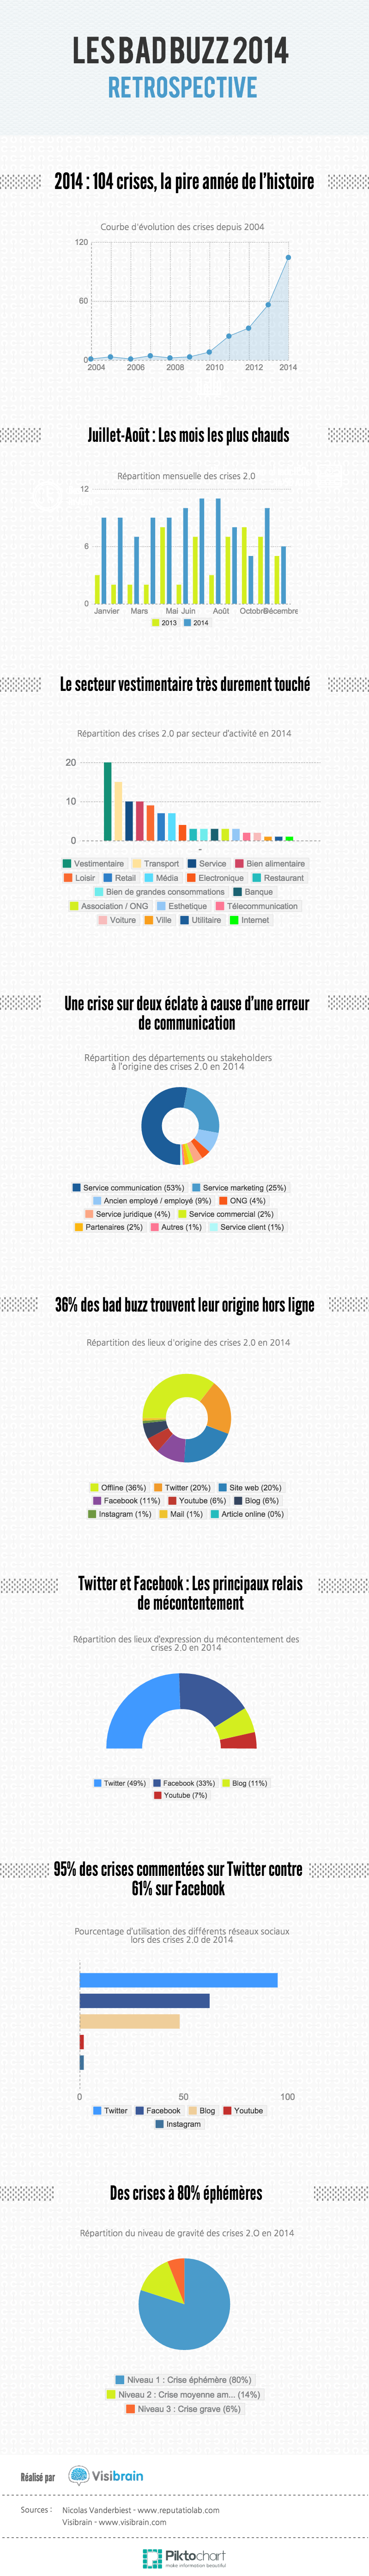 Infographie-bad-buzz-2014-retrospective